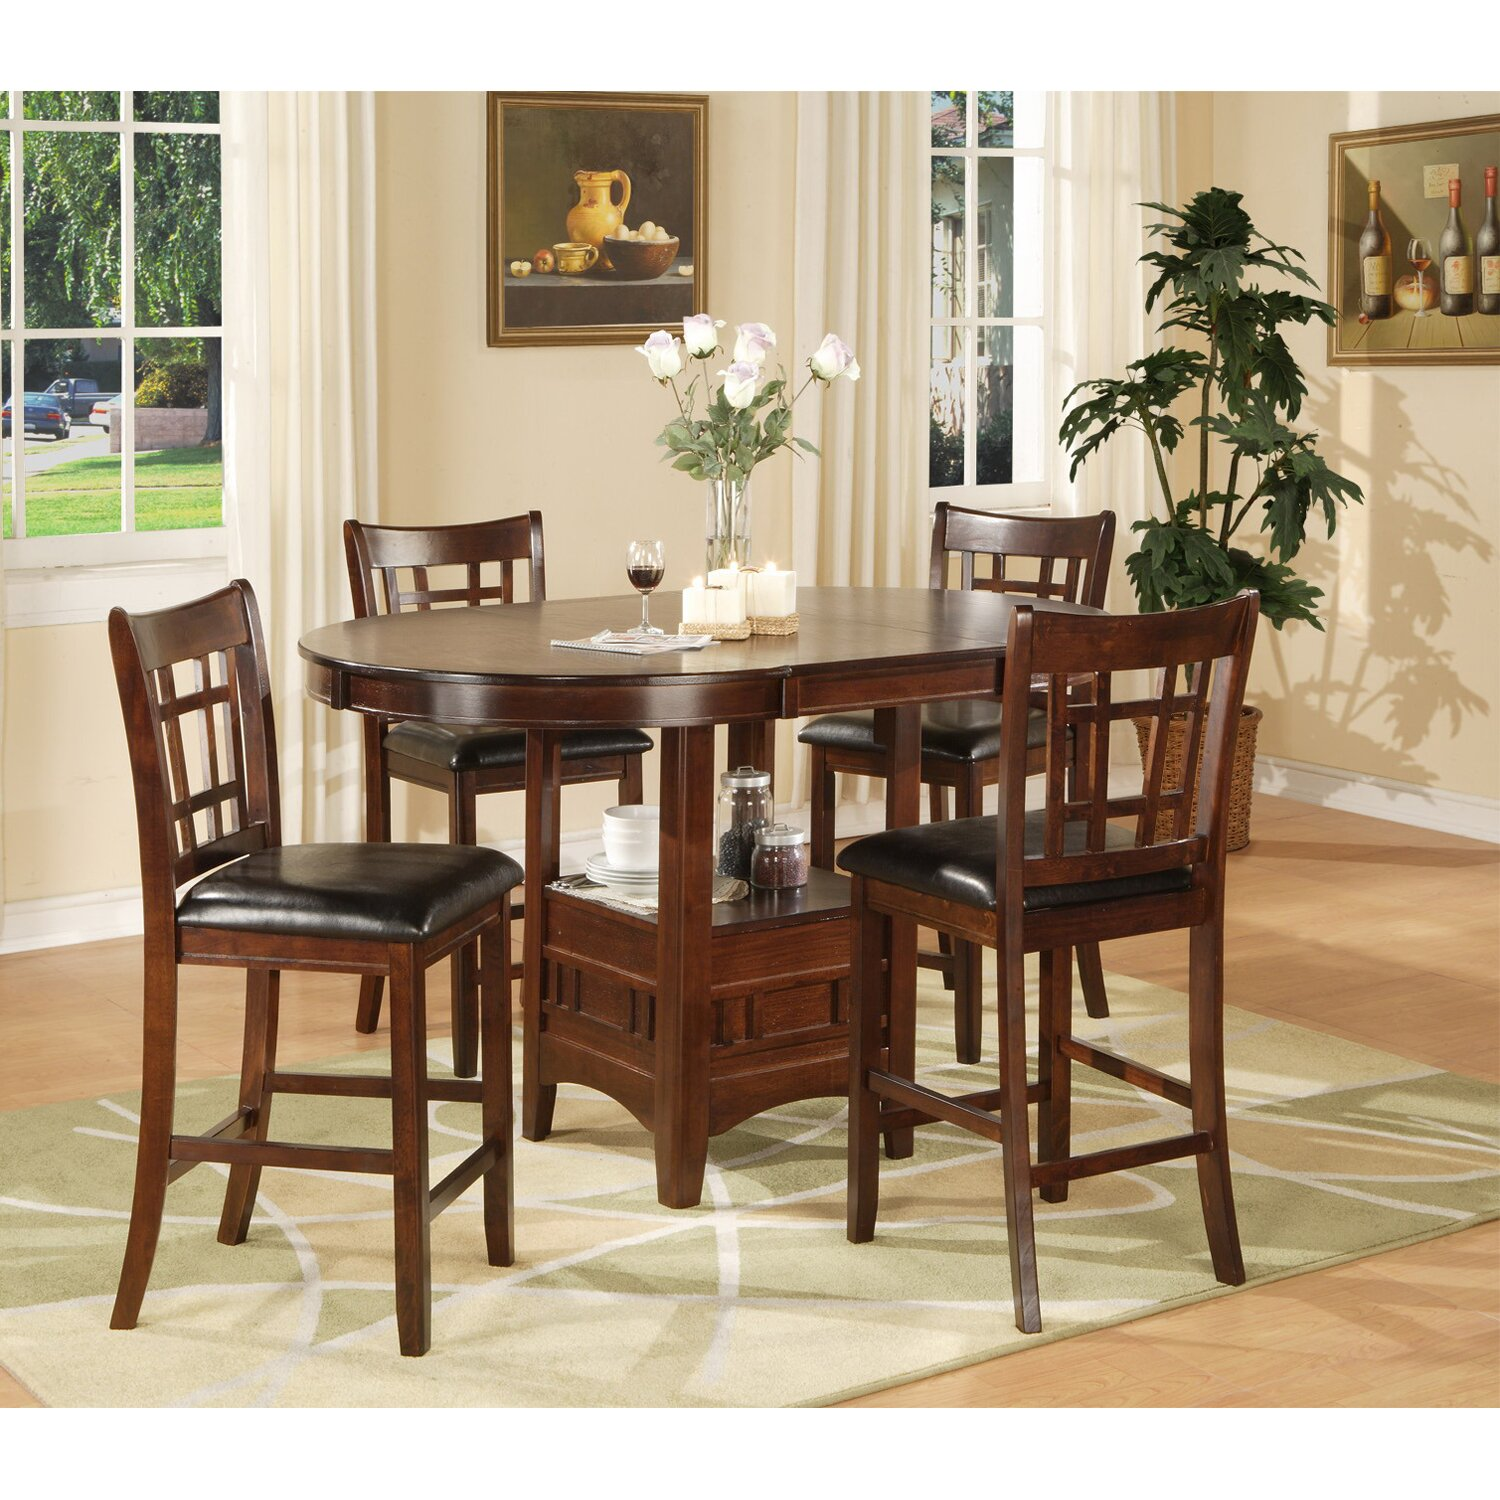 Counter Height Dining Sets 5 Piece : Hazelwood Home Counter Height Dinette 5 Piece Set & Reviews Wayfair